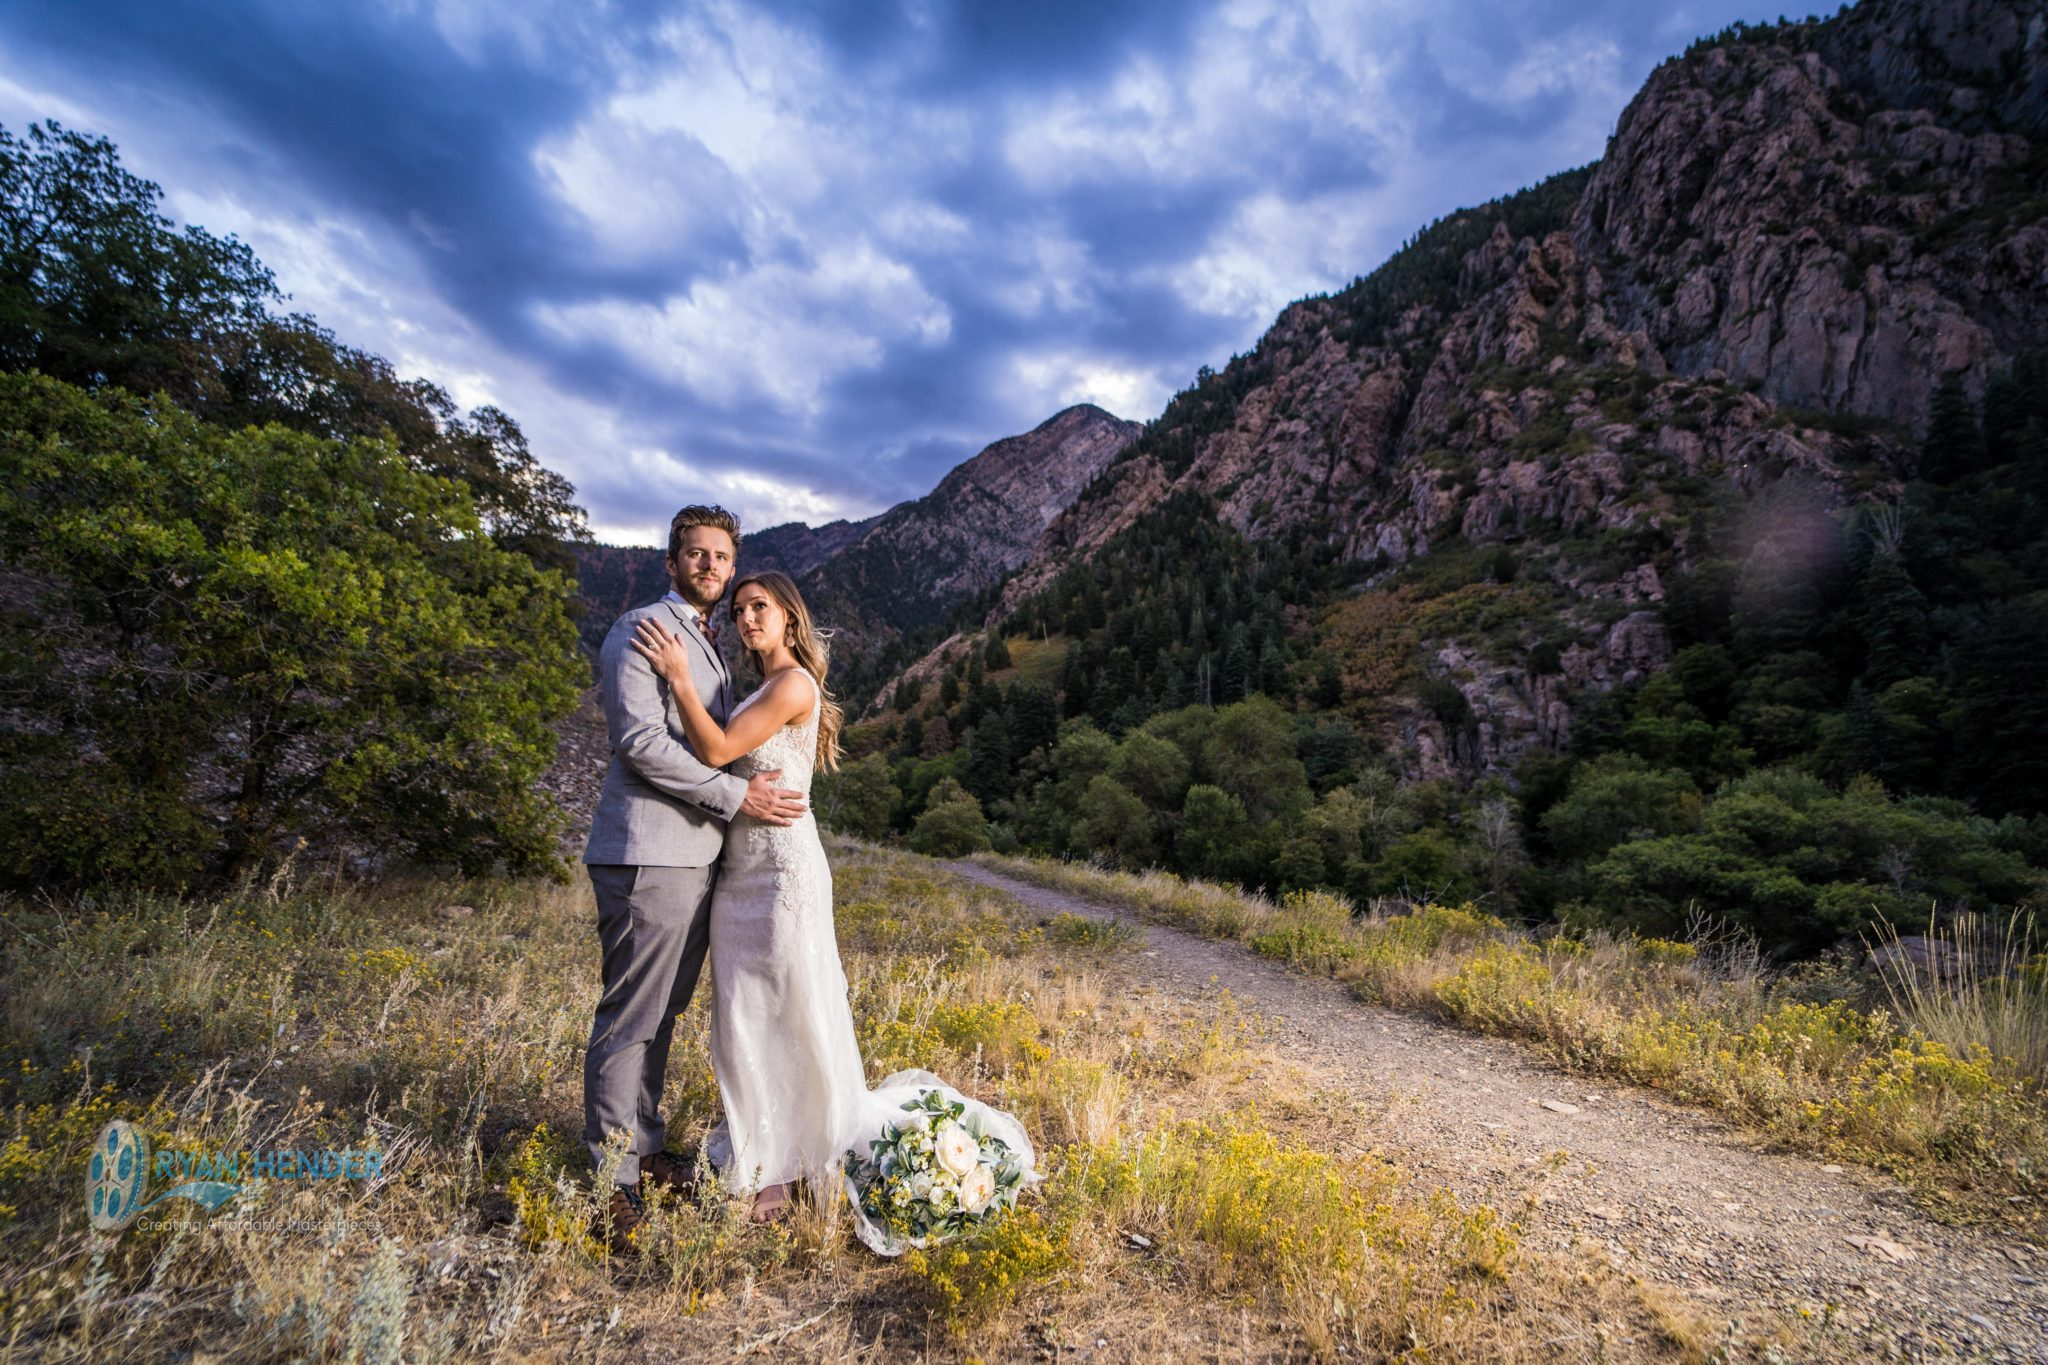 wedding bridal photo shoot utah state  salt lake city utah